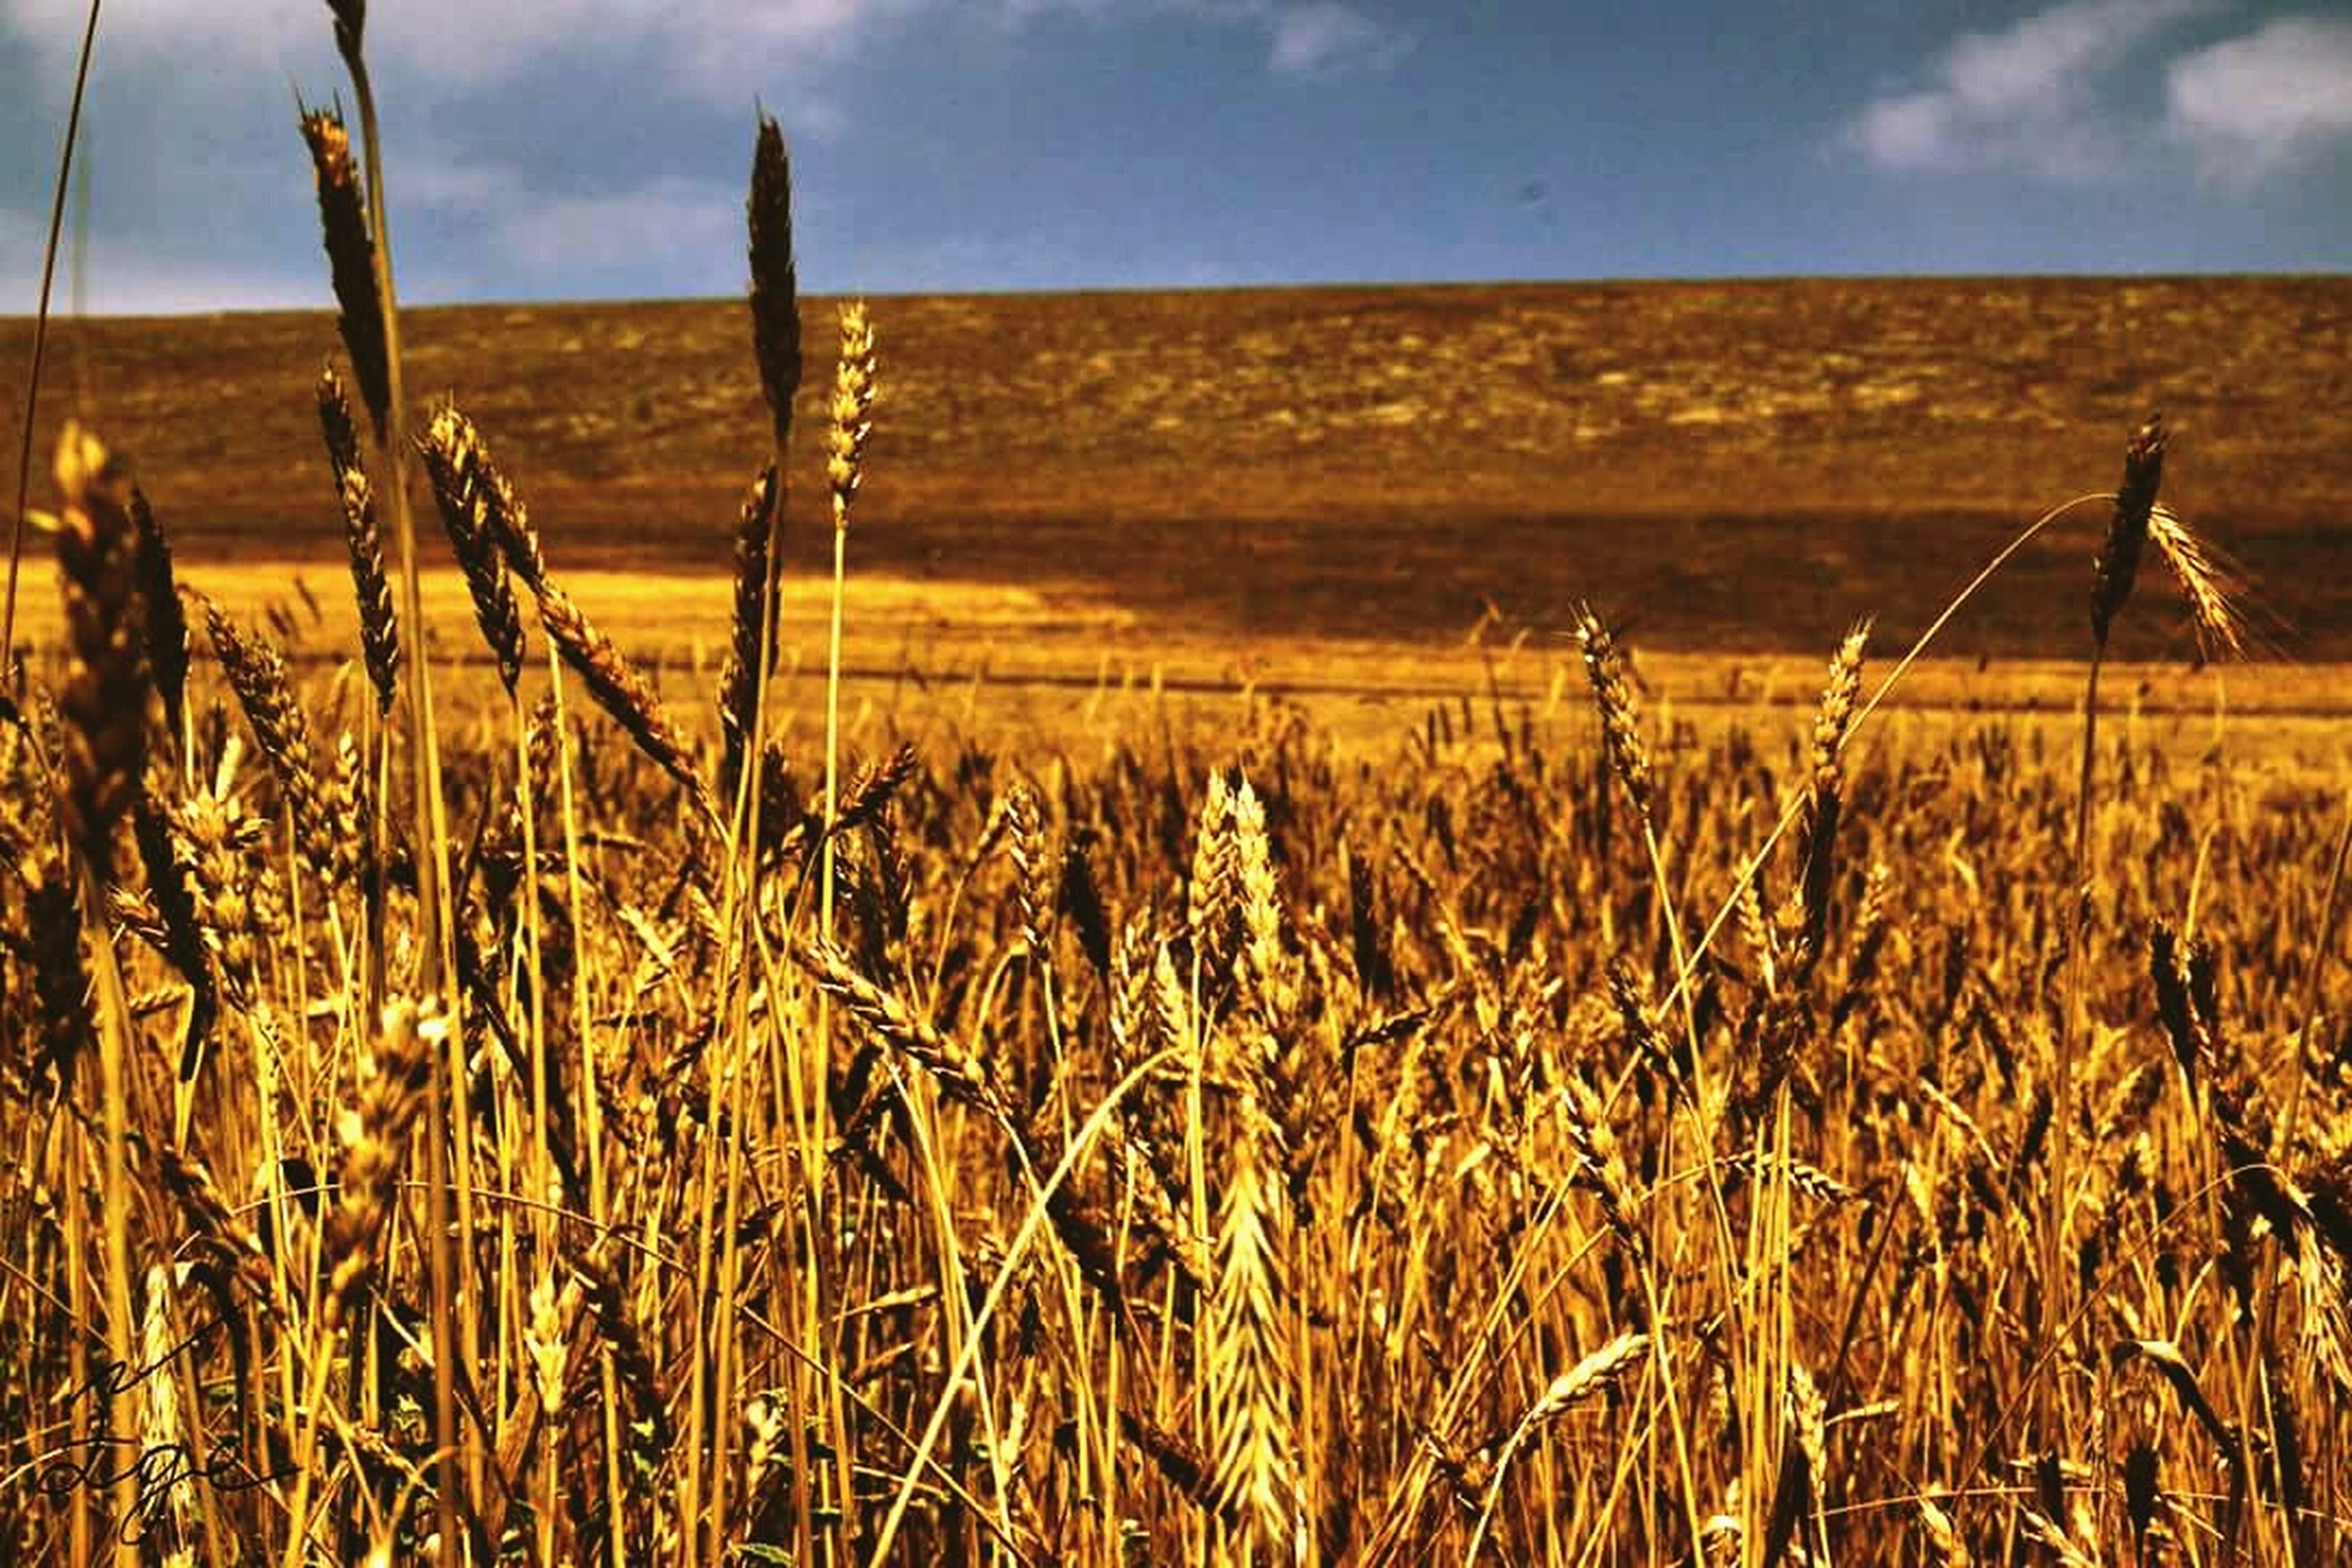 field, growth, rural scene, crop, landscape, agriculture, farm, tranquil scene, tranquility, plant, nature, scenics, cultivated land, brown, beauty in nature, plantation, cultivated, sky, non-urban scene, outdoors, wheat, focus on foreground, day, cereal plant, stalk, remote, farmland, no people, solitude, plant life